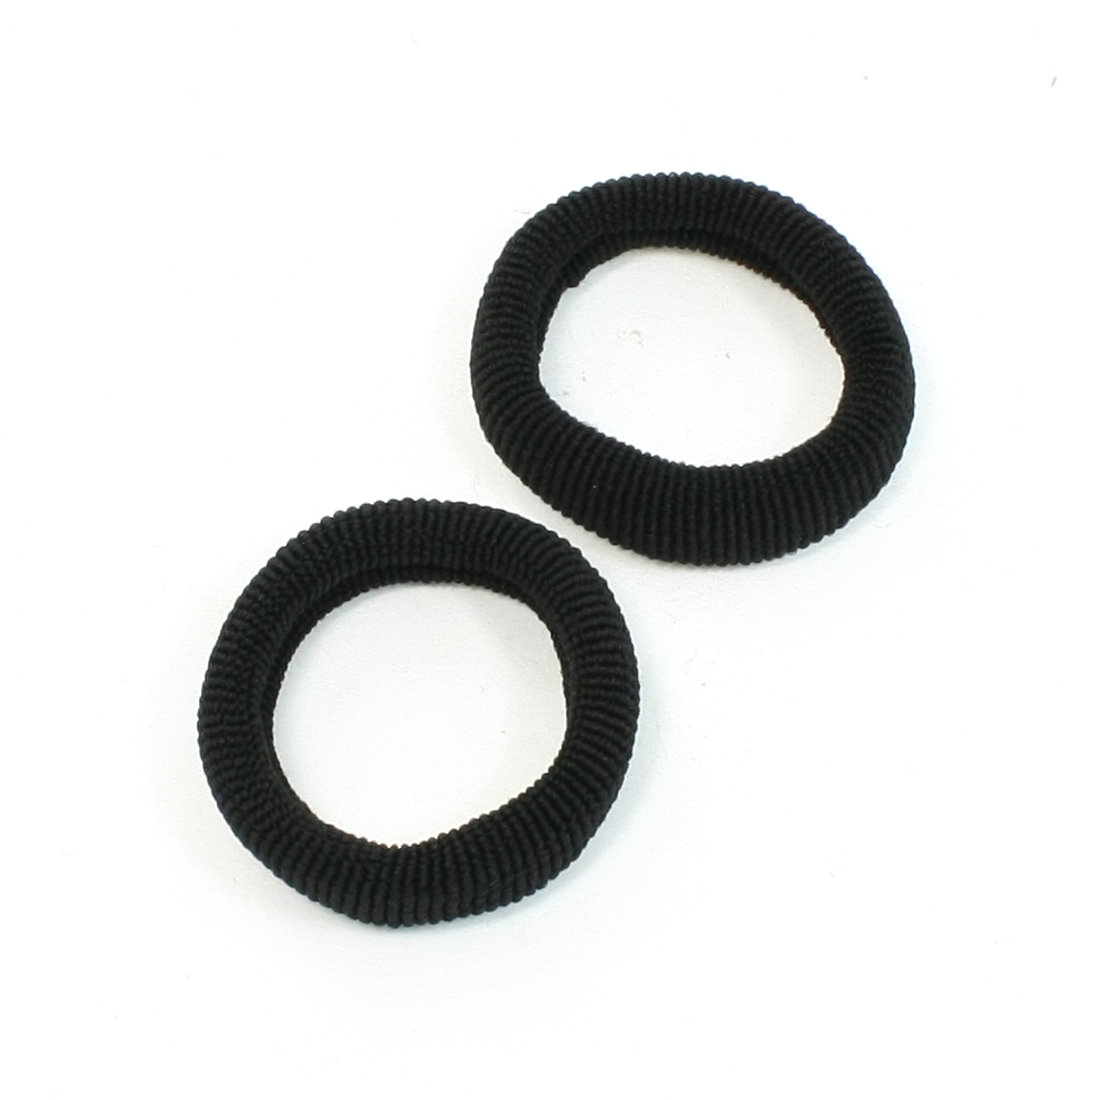 2 Pcs Stretch Band Ponytail Holder Hair Tie Holders Black